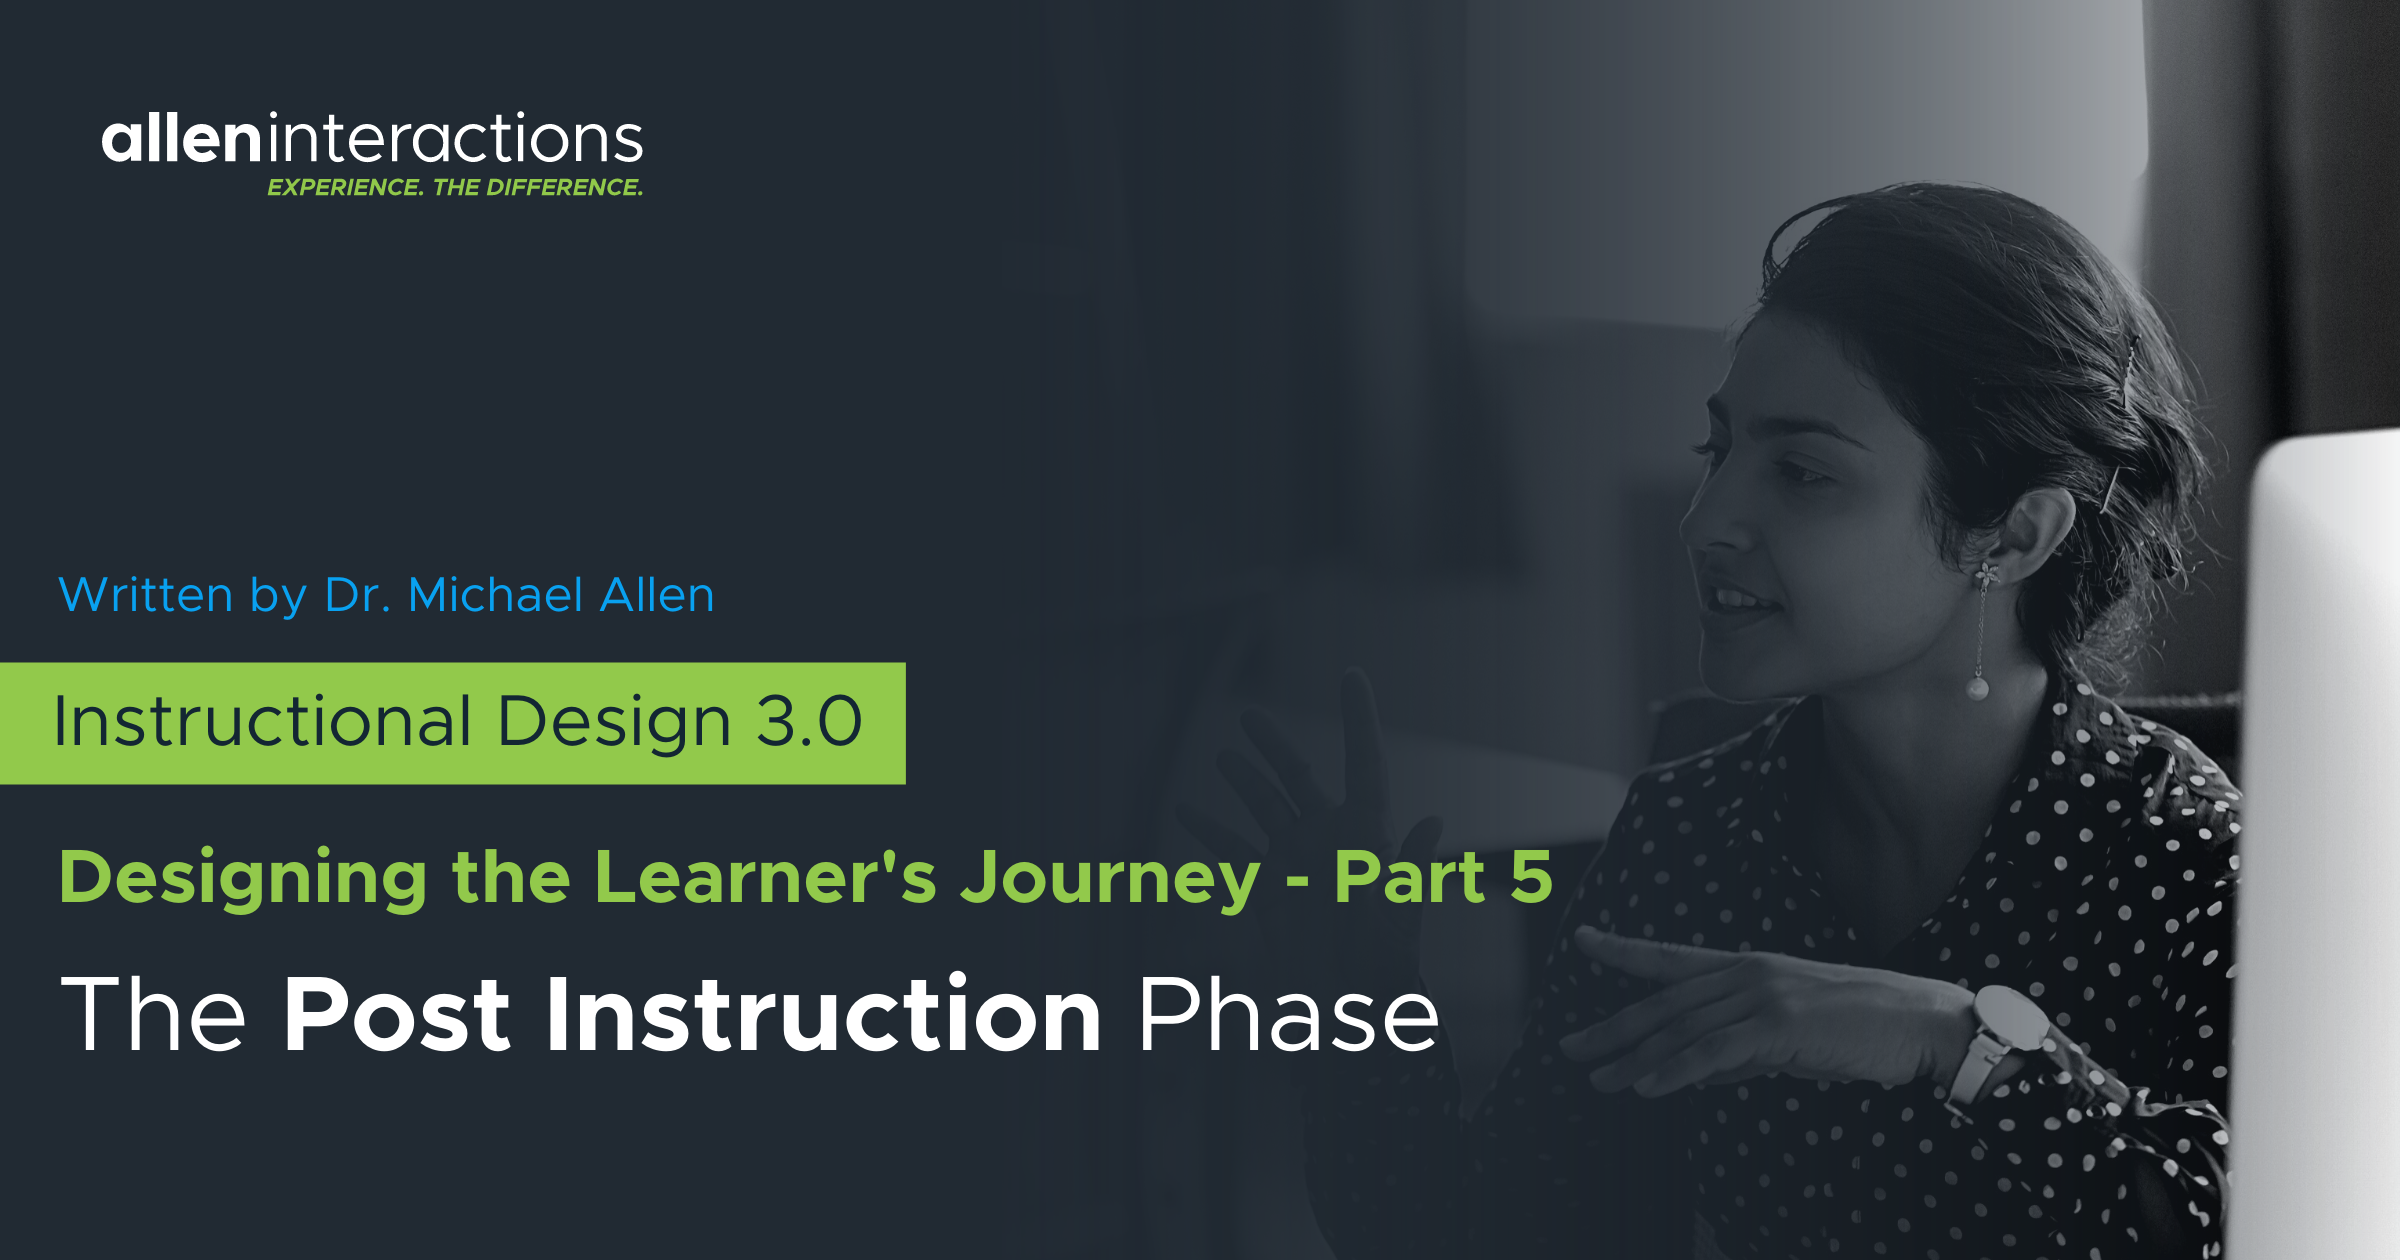 Instructional Design 3.0: Designing the Learner's Journey - Part 5 - The Post Instruction Phase